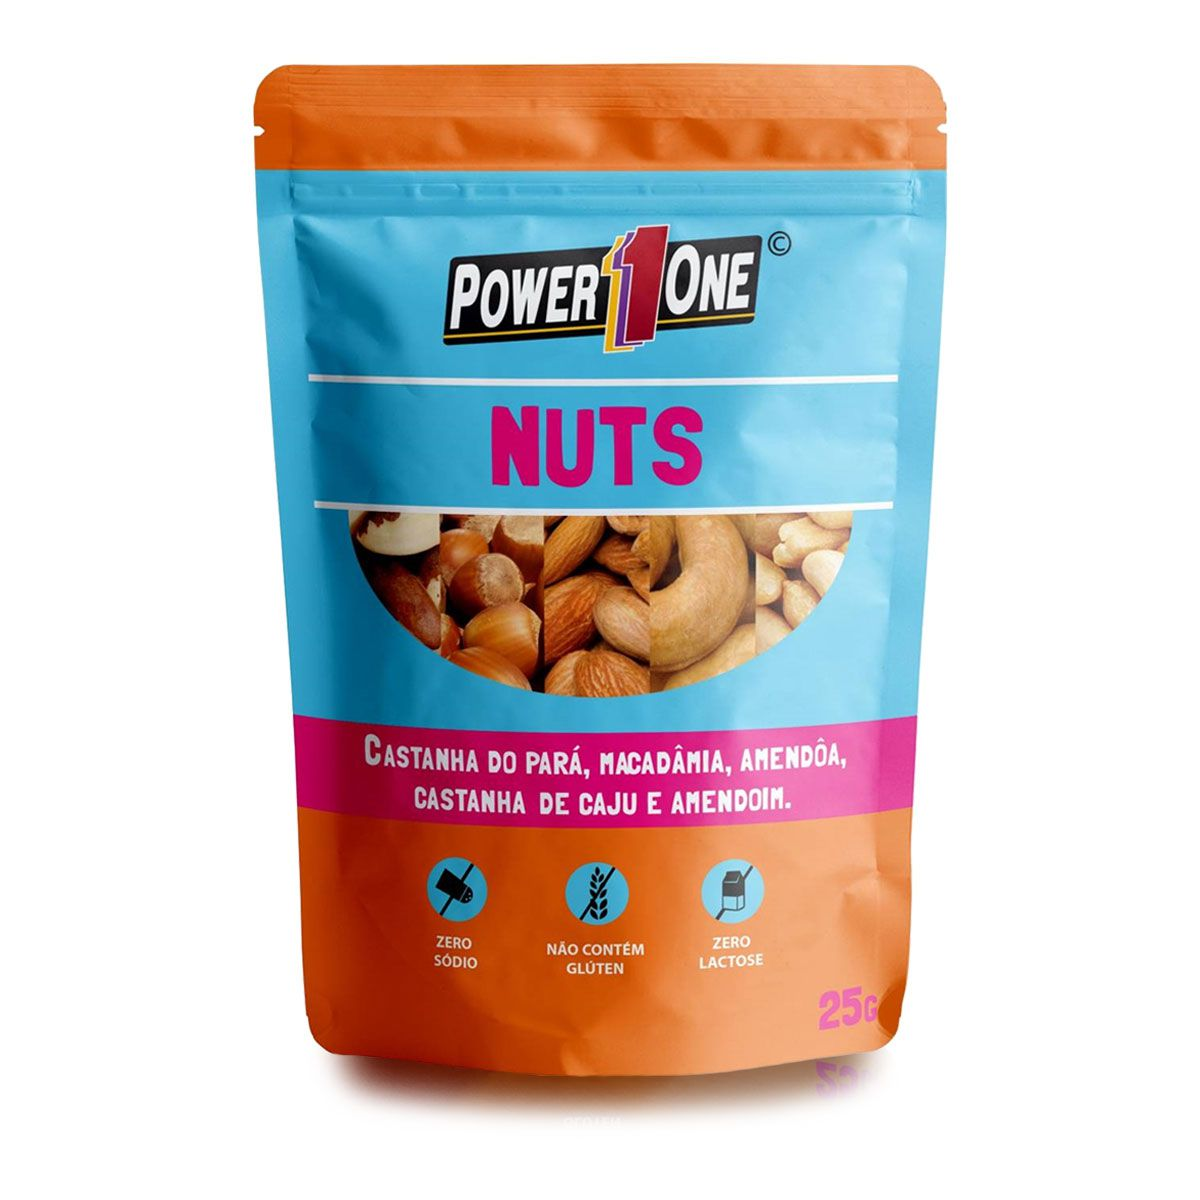 Nuts Mix (25g) - Power1One